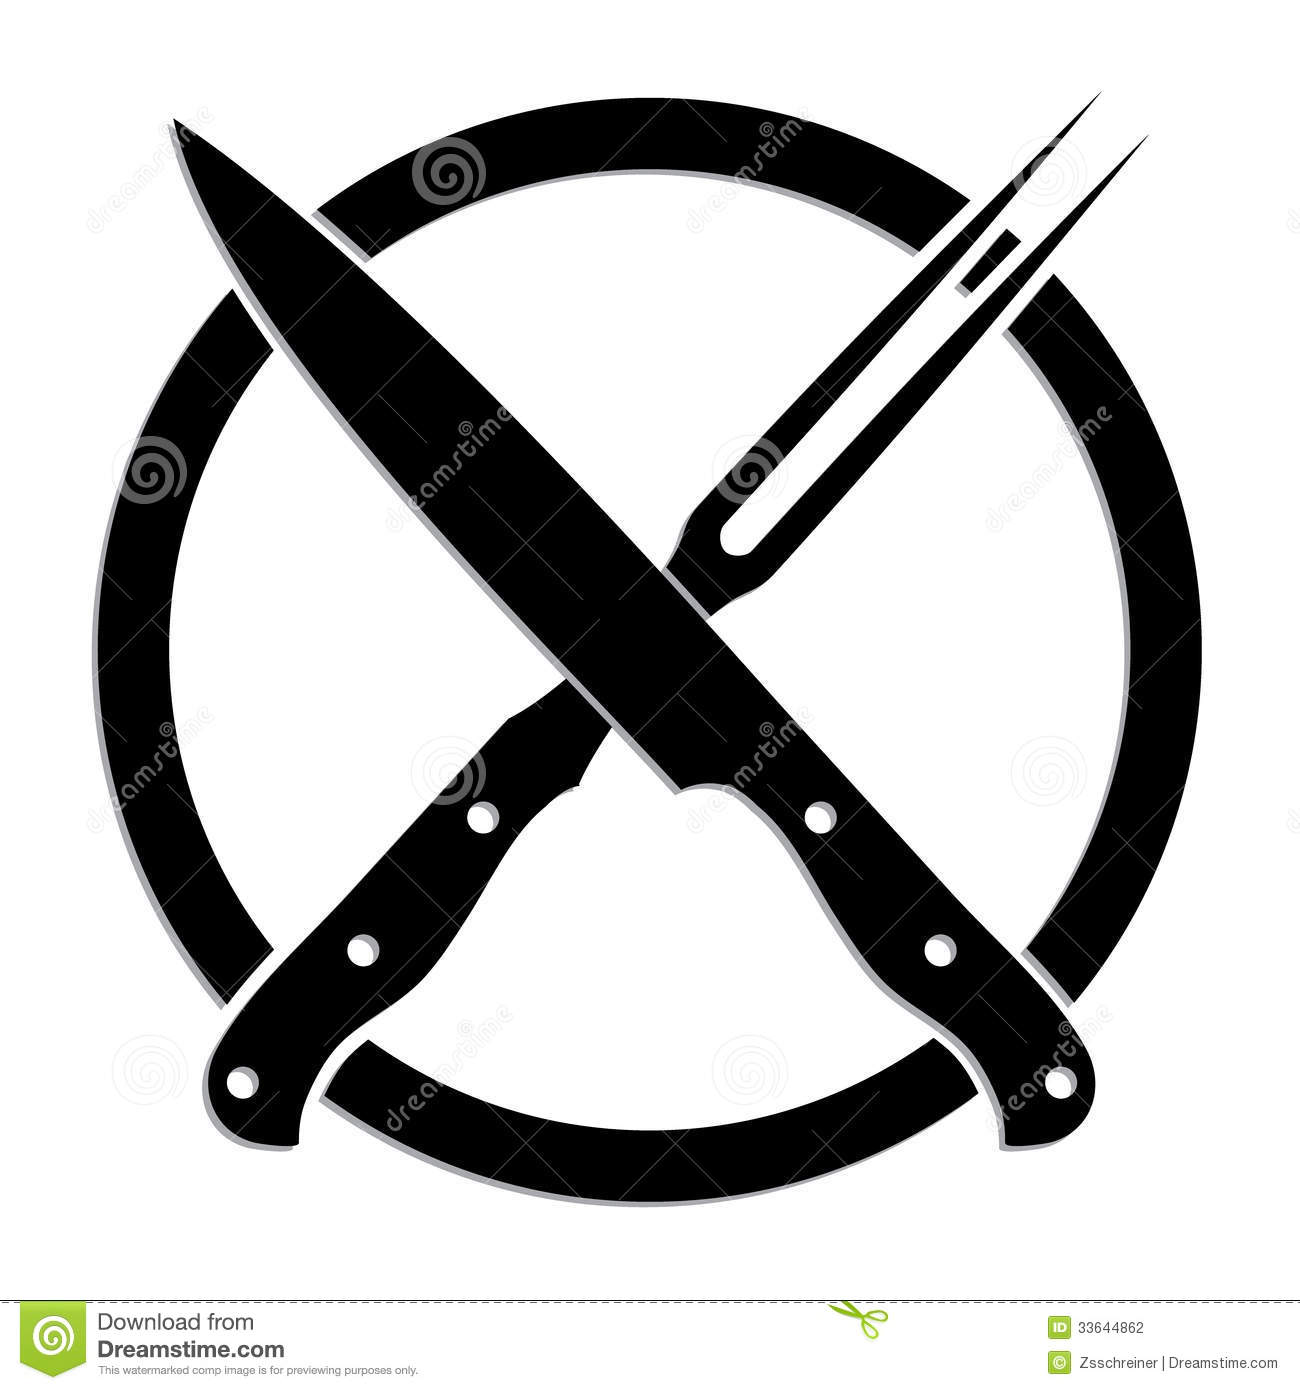 Illustrated Black White Symbol Of Crossed Knife And Fork